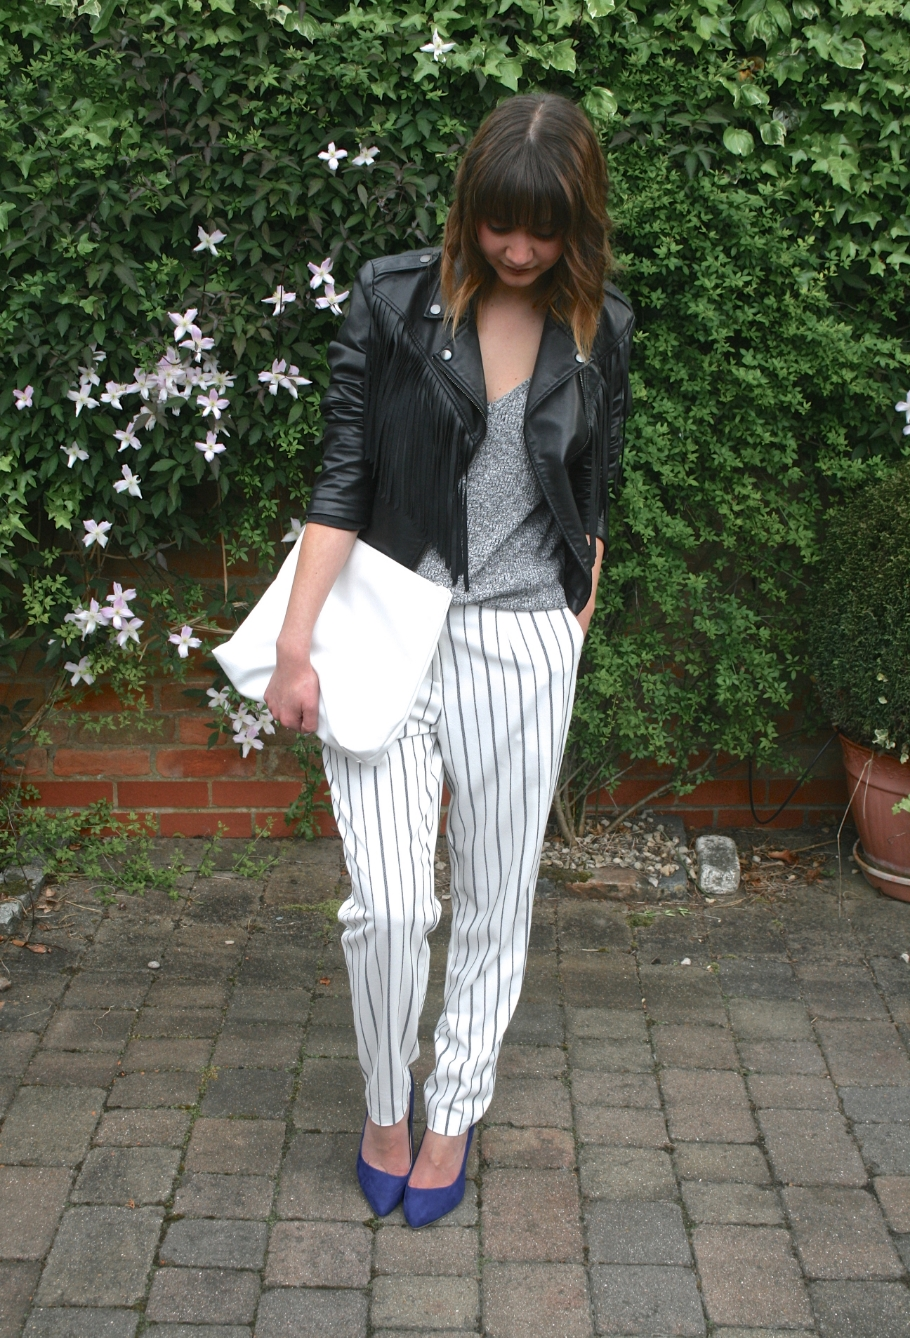 striped trousers outfit post